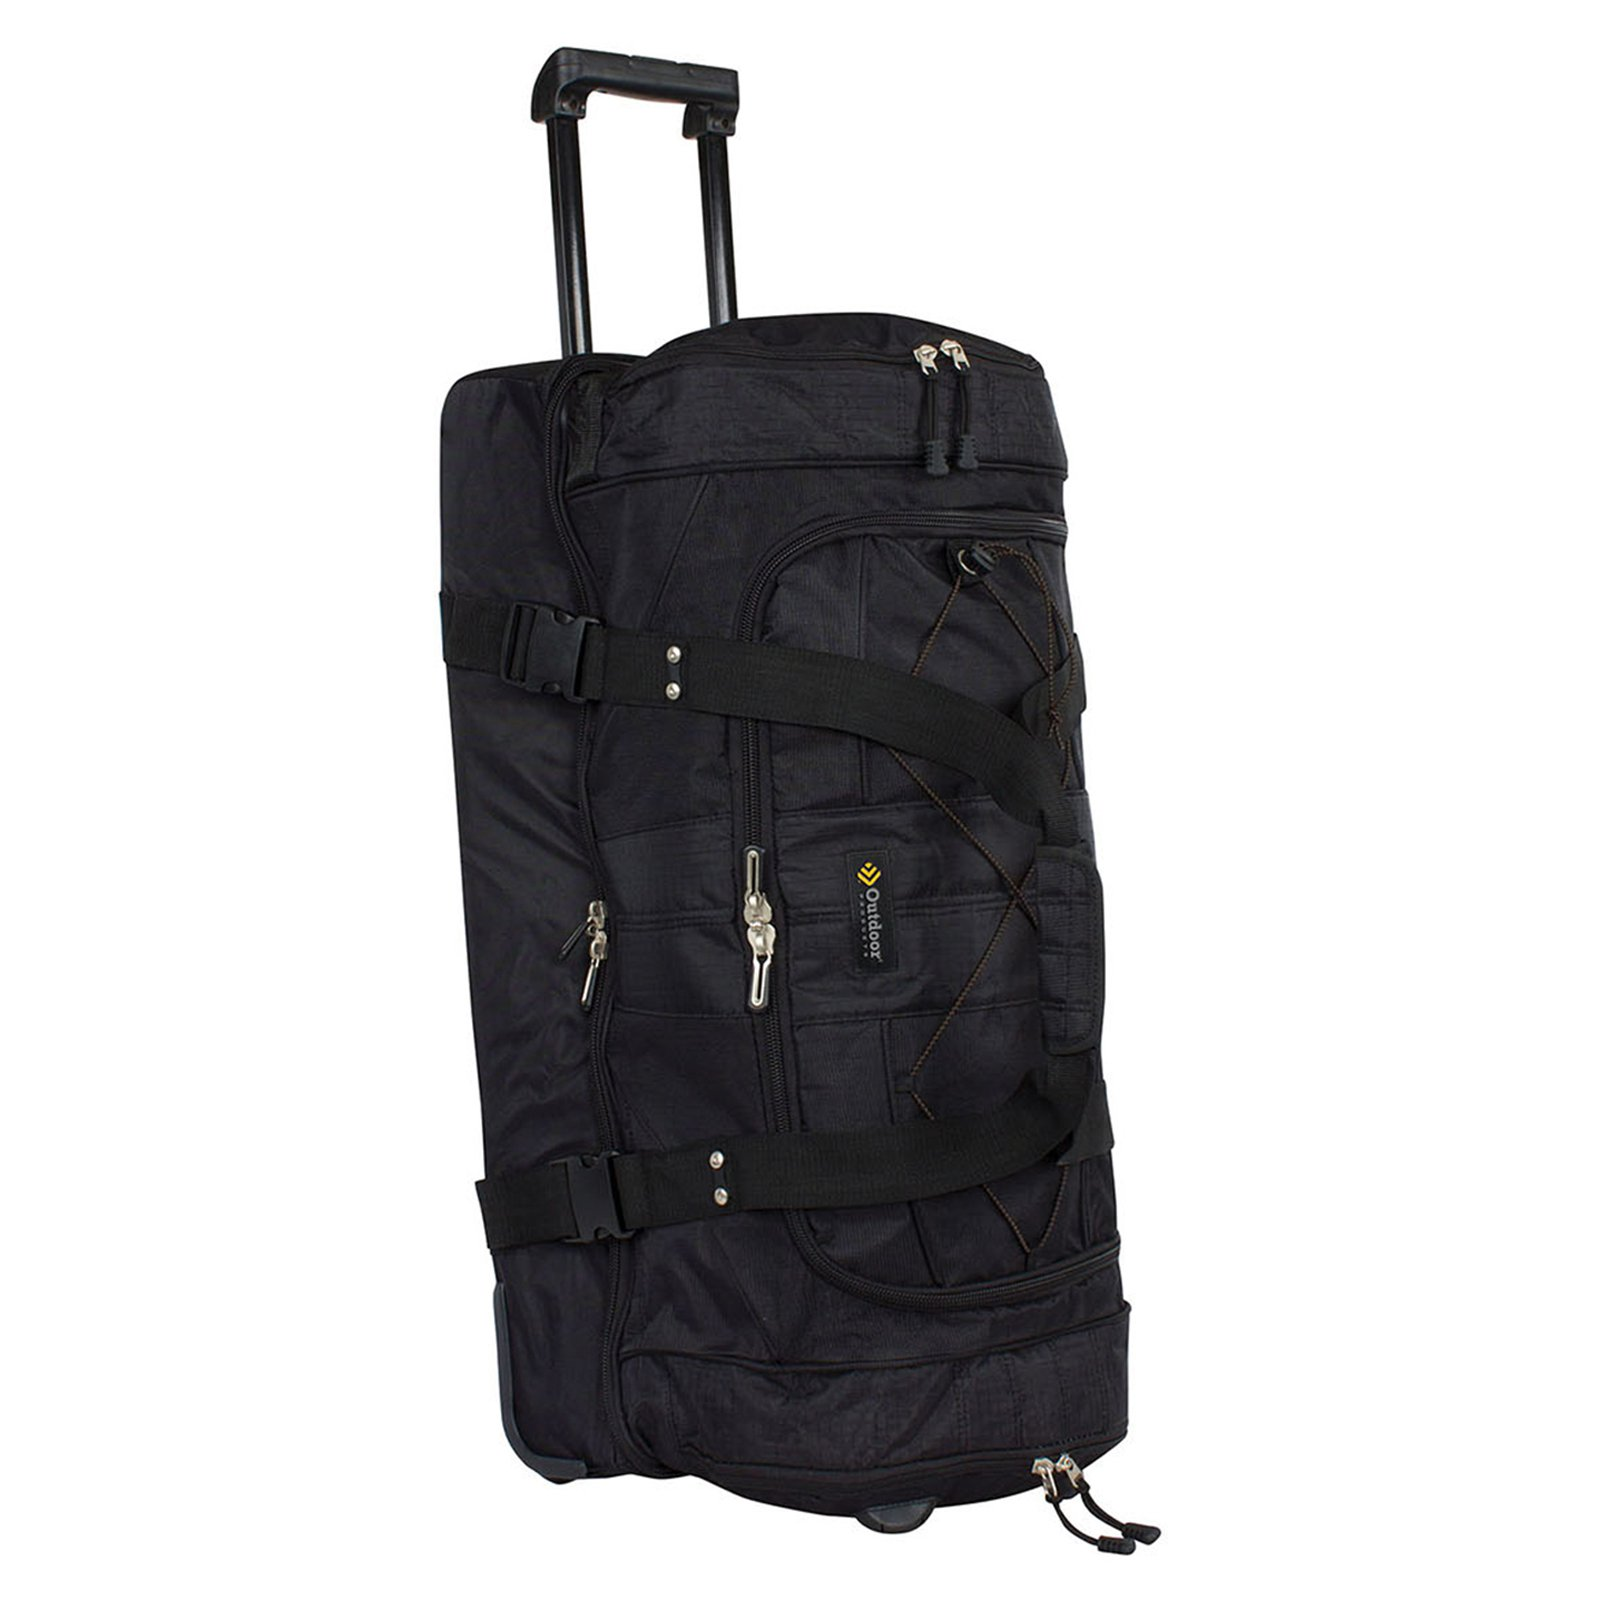 Outdoor Products LaGuardia Rolling Travel Bag by Outdoor Products